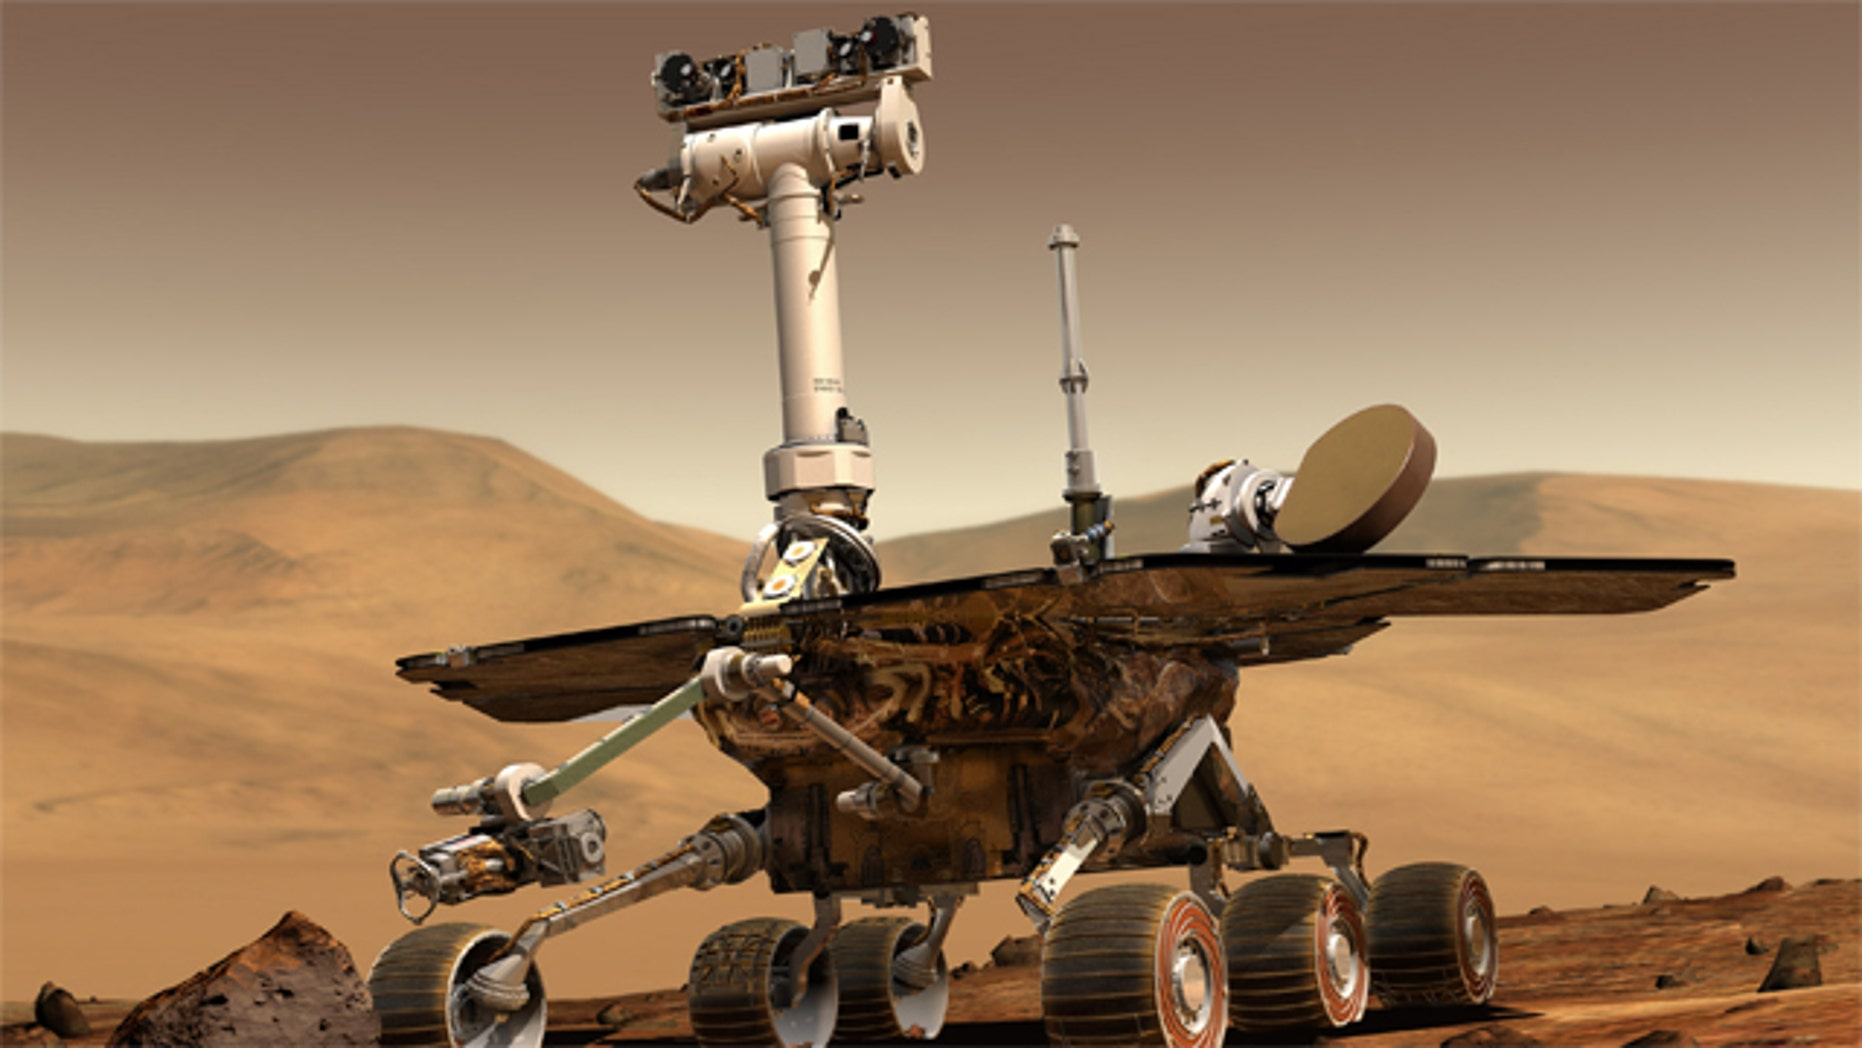 Artist rendering of a Mars Rover on the Red Planet.